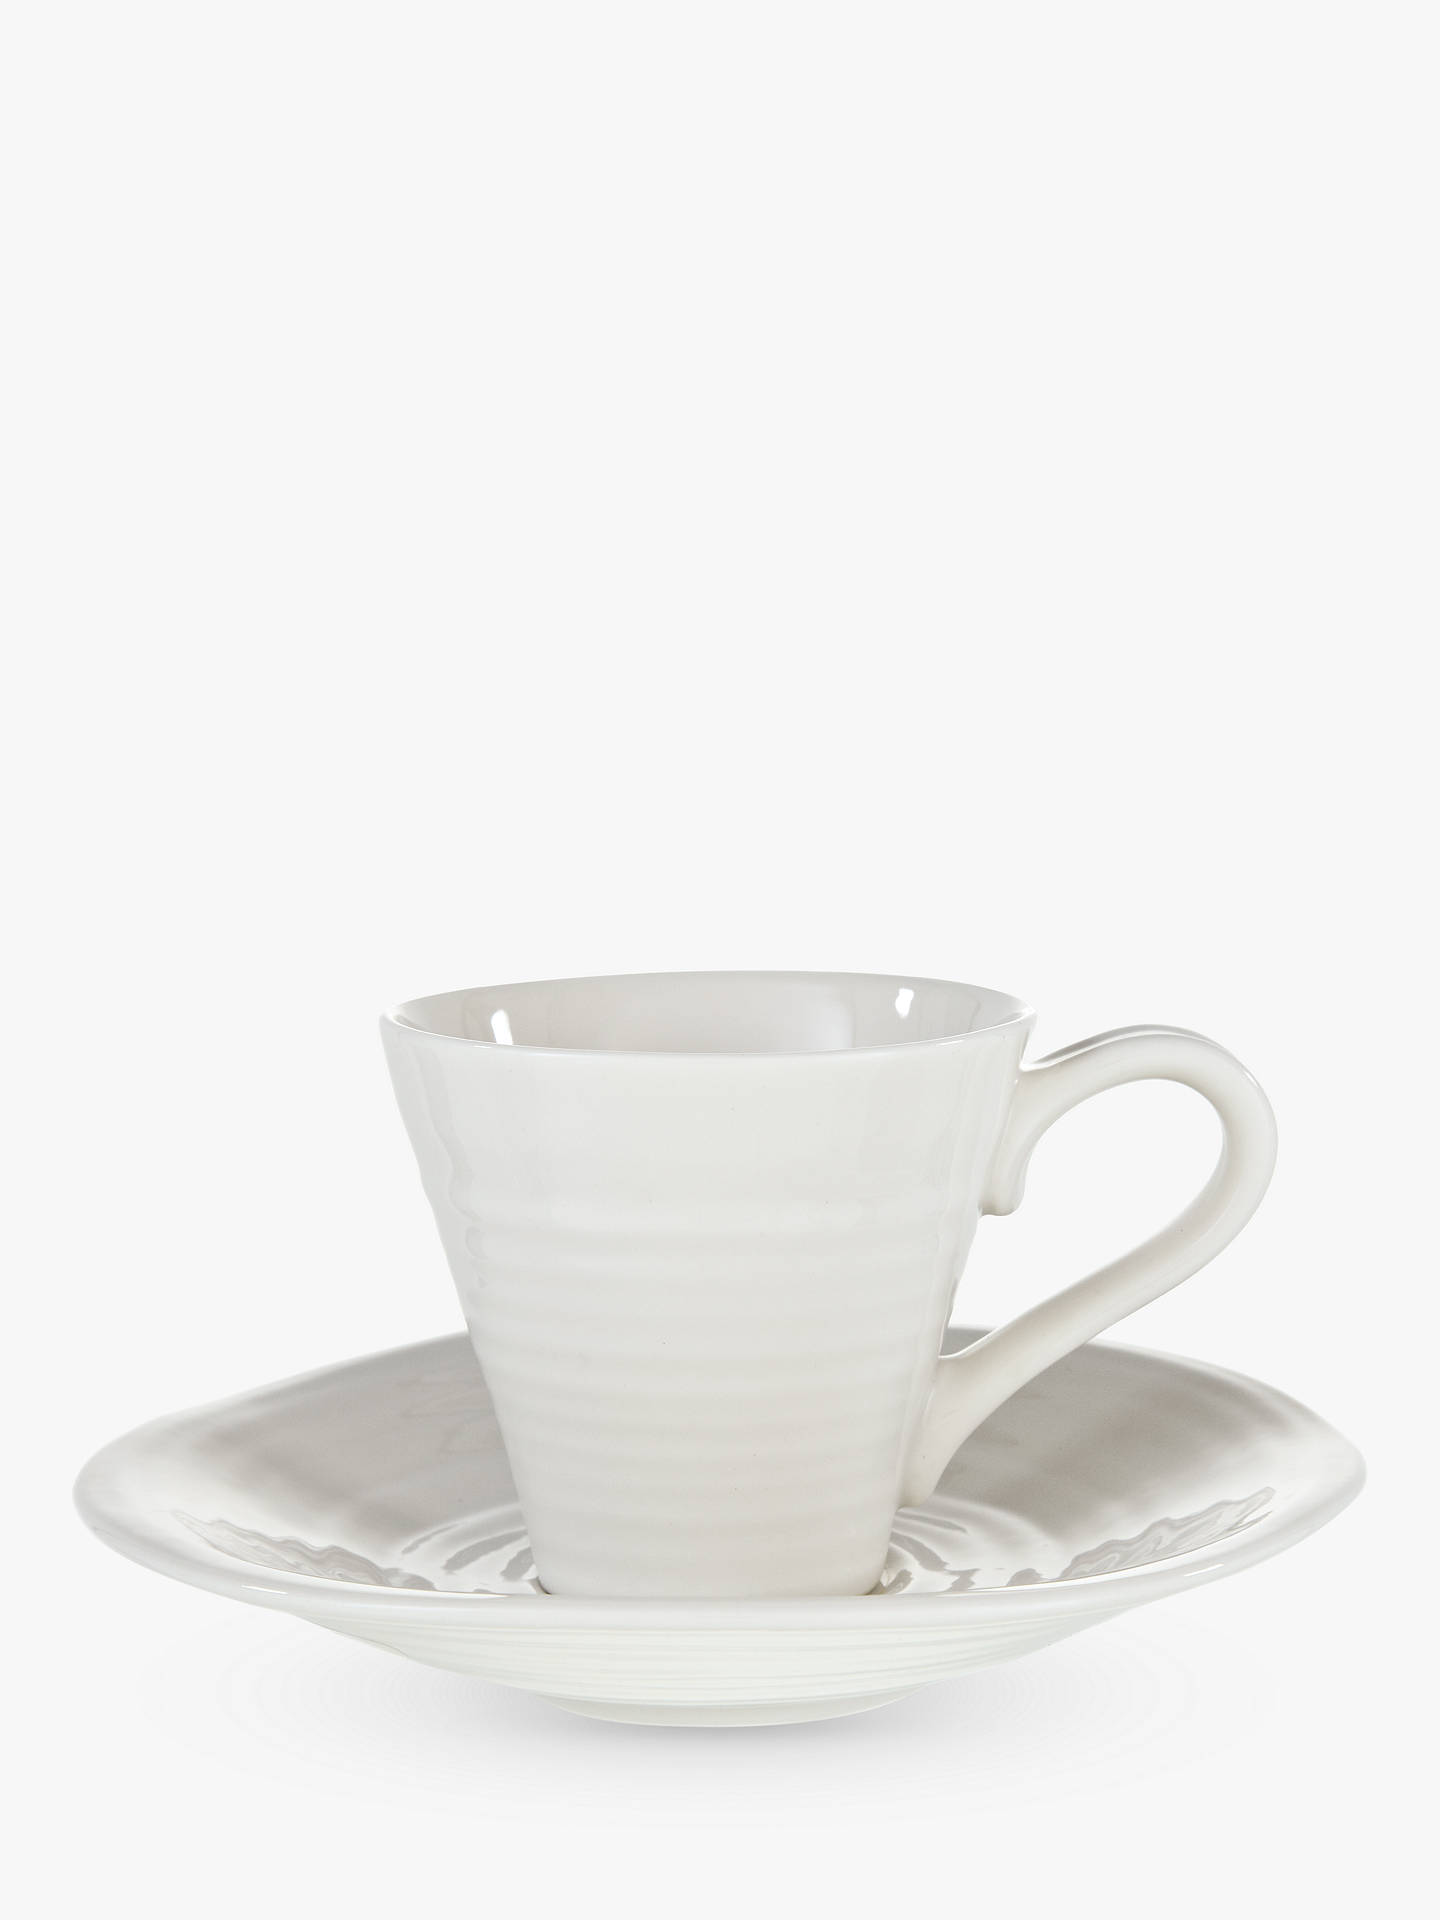 Sophie Conran For Portmeirion Espresso Cup And Saucer White Pack Of 2